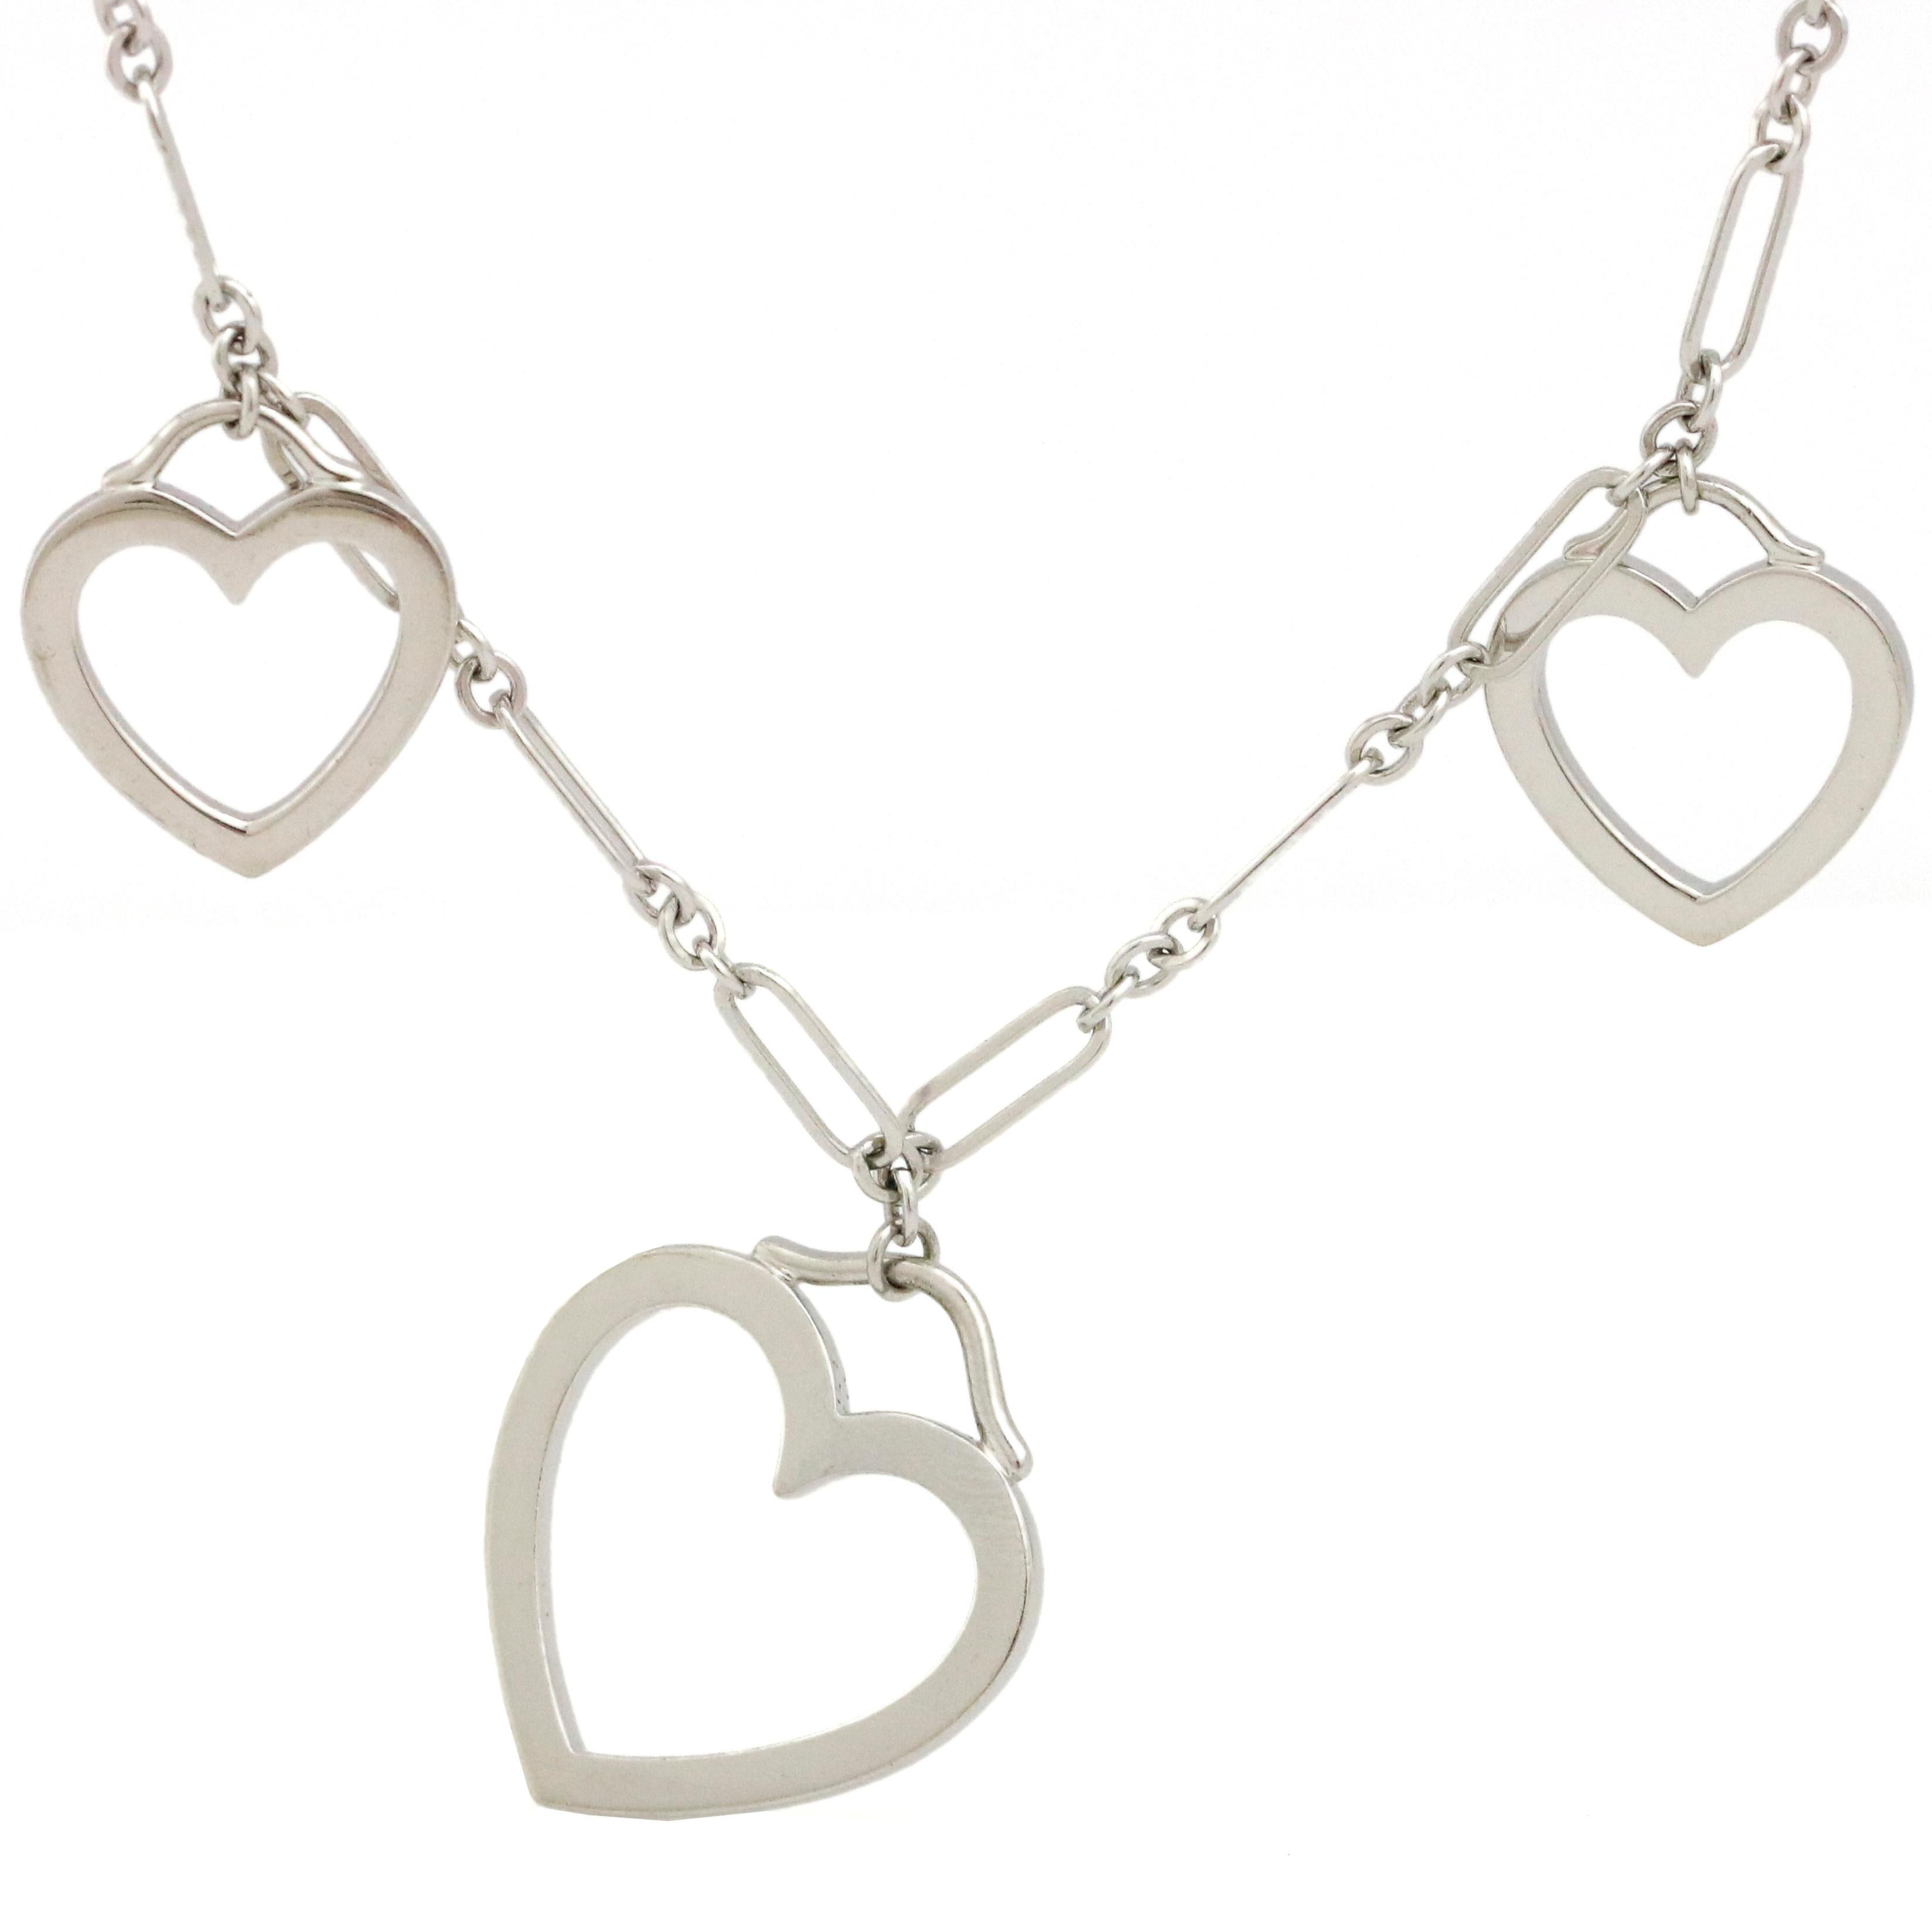 9ddd7e6e3 Tiffany and Co. Heart Pendant Mesh Chain Necklace in 18 Karat Yellow Gold  For Sale at 1stdibs